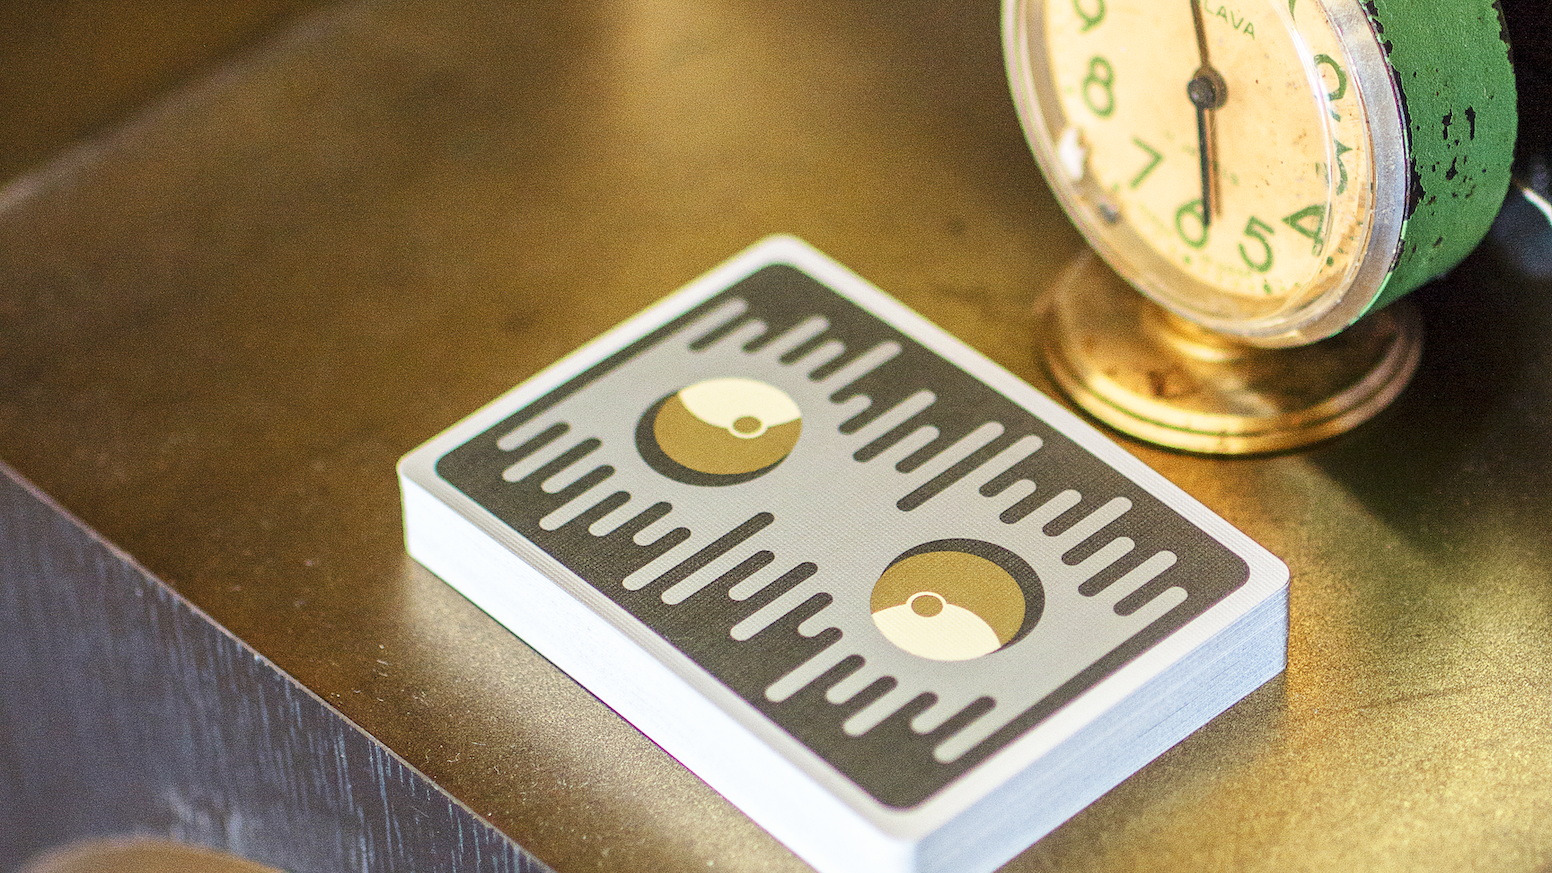 Get LIMITED EDITION playing cards featuring a minimalist space theme. Printed by HCPC. Funded!